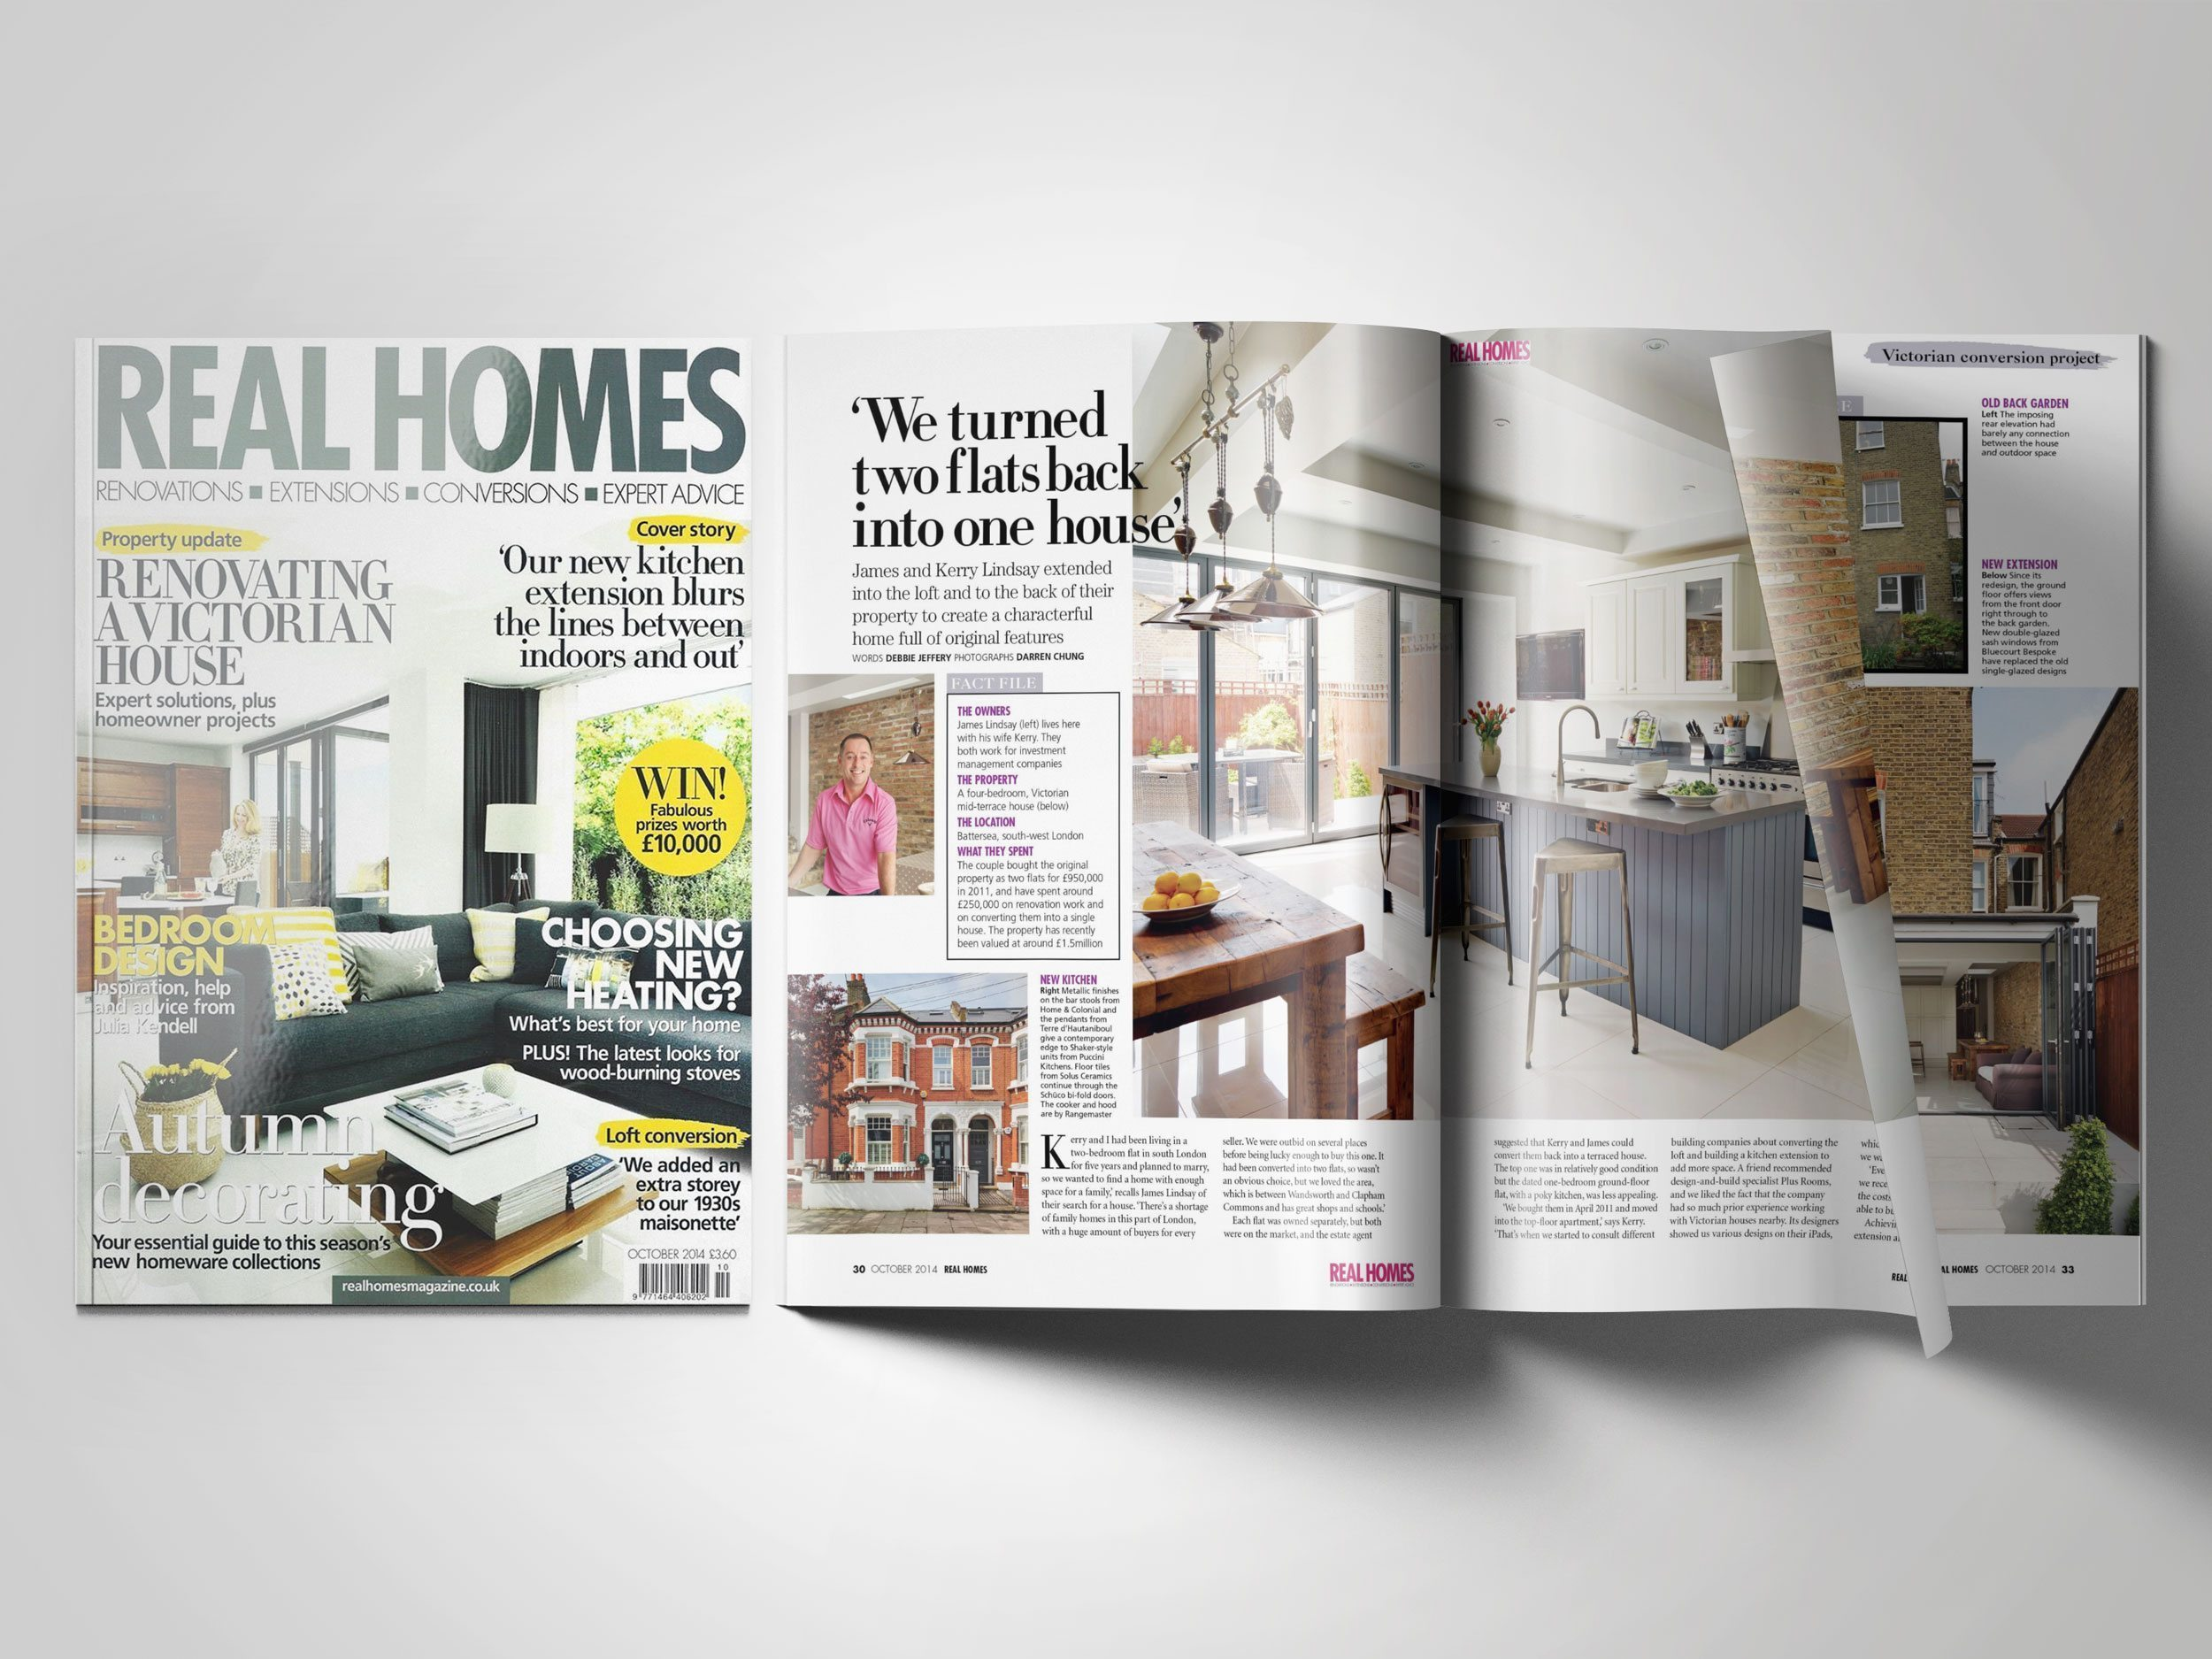 Real Homes October 2014